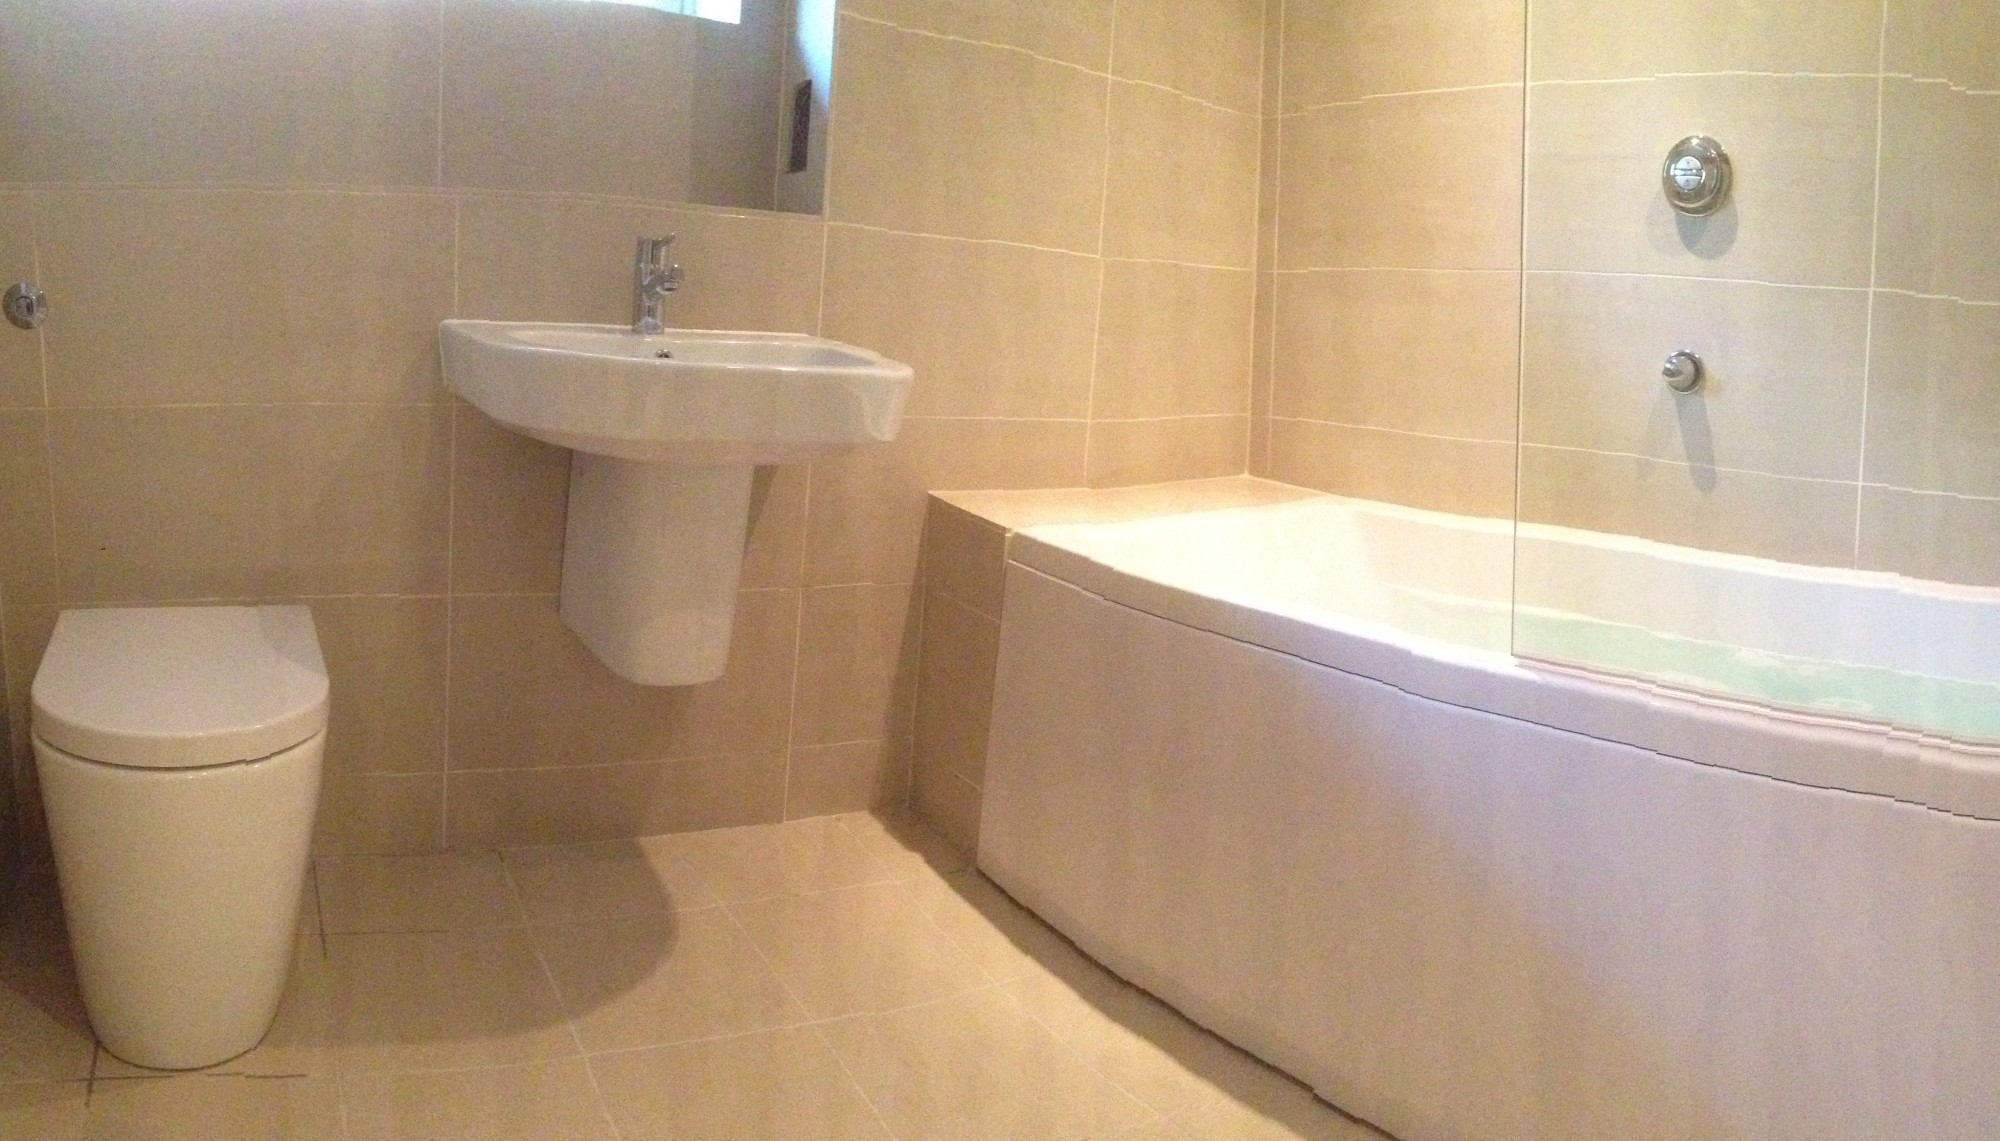 Gallery Kingfisher Bathrooms And Kitchens Mark Toms Woodley - Bathroom refit